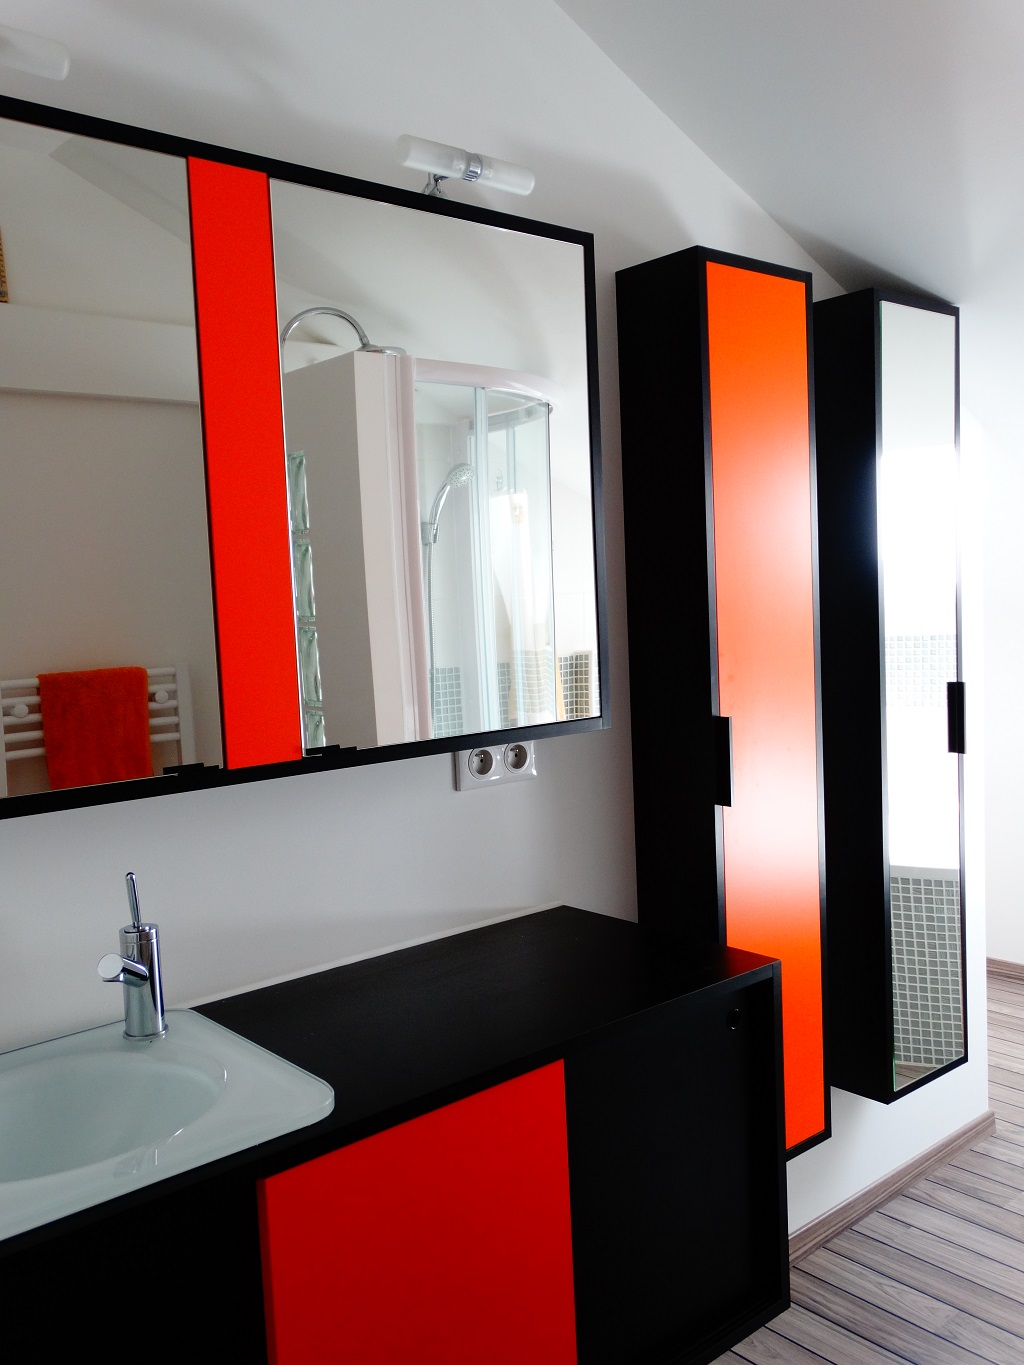 Best salle de bain orange et noir ideas amazing house for Salle bain orange